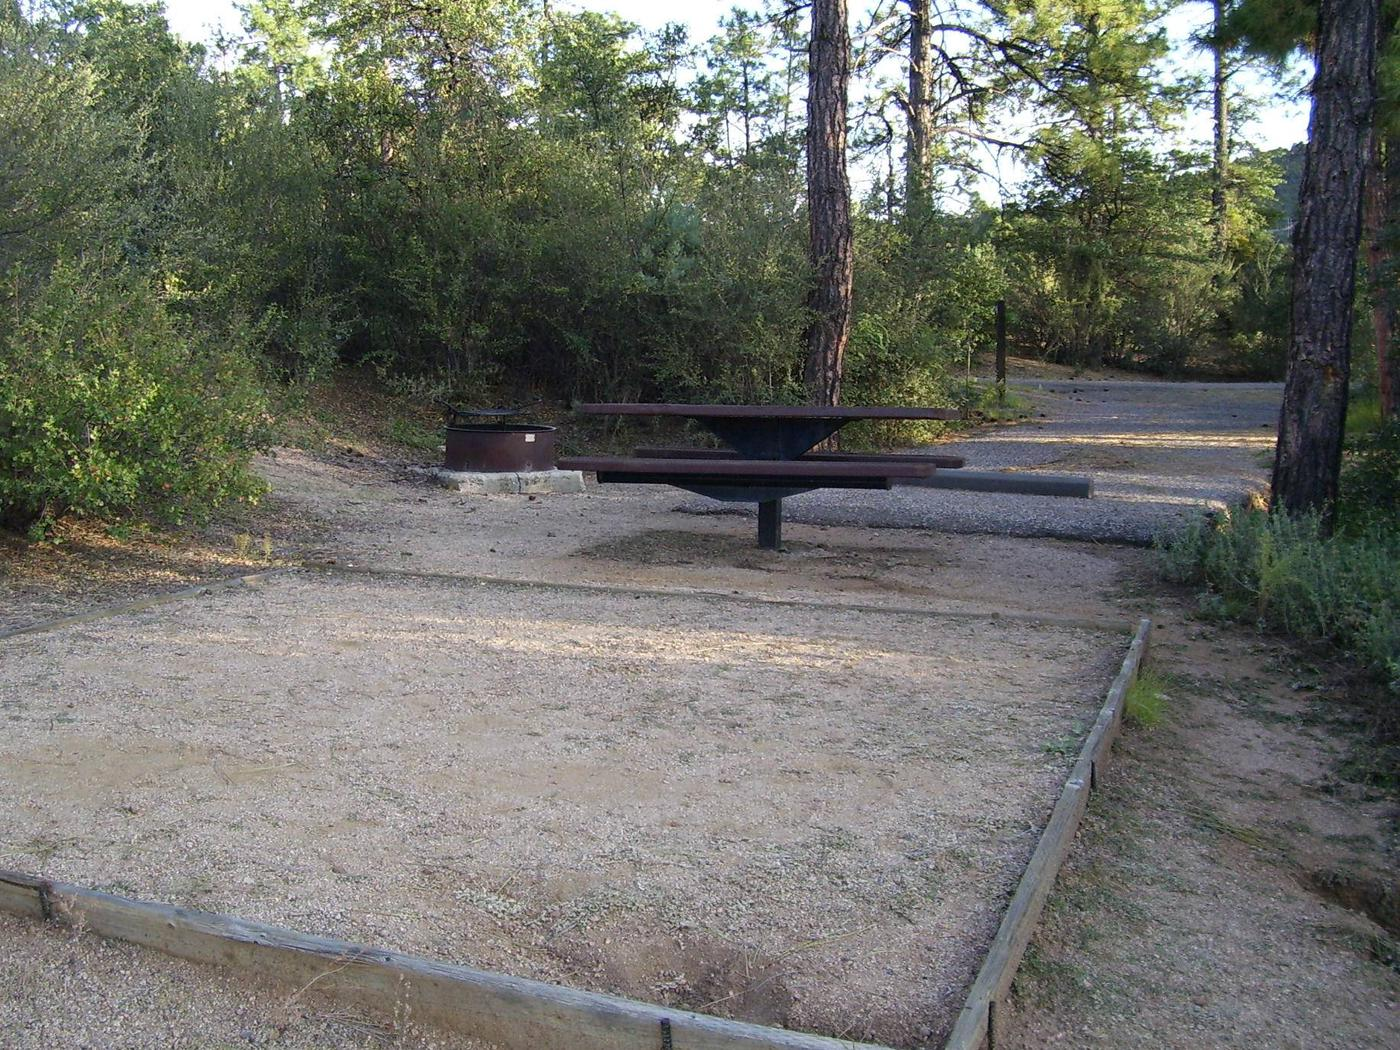 Yavapai Campground Site 8 in heavy shade, sandy tent pad with table and fire pit between sandy driveway and tent pad. Yavapai Campground site #8